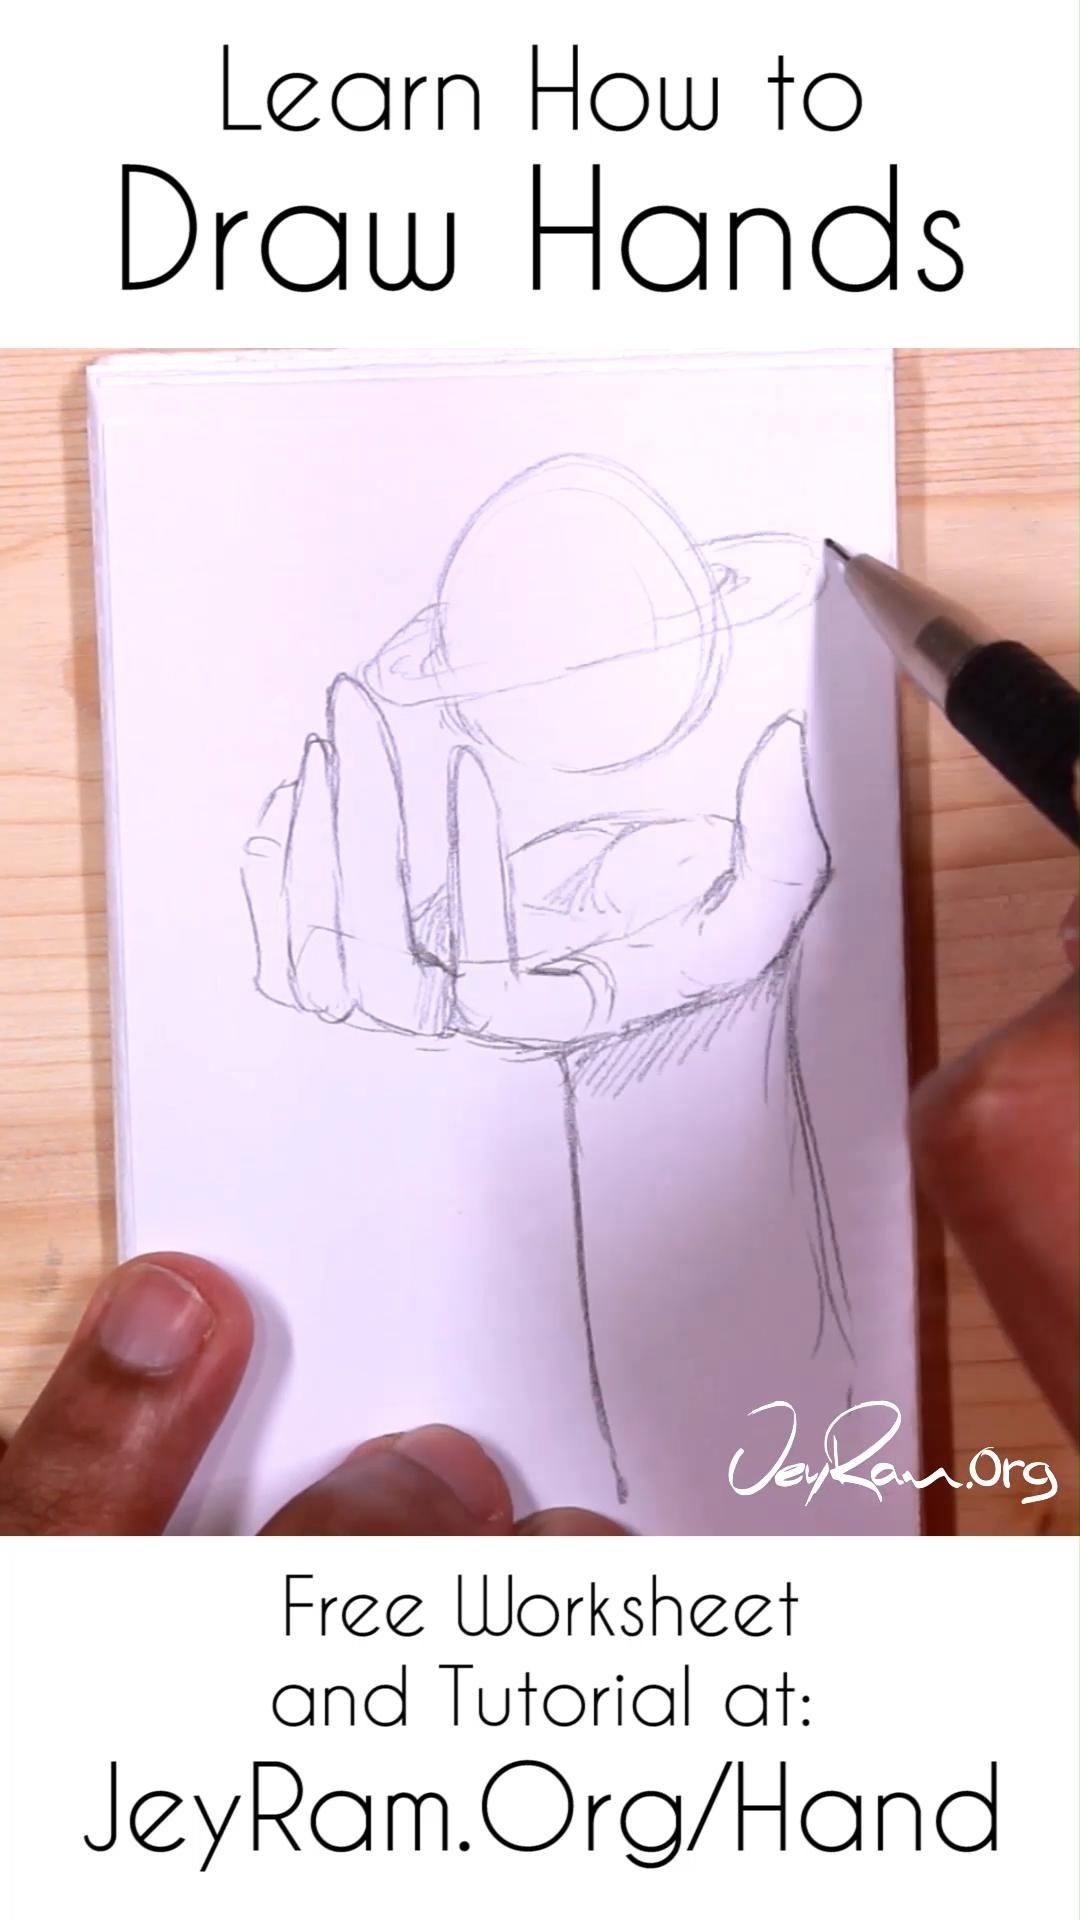 How To Draw Hands Free Worksheet Amp Step By Step Tutorial